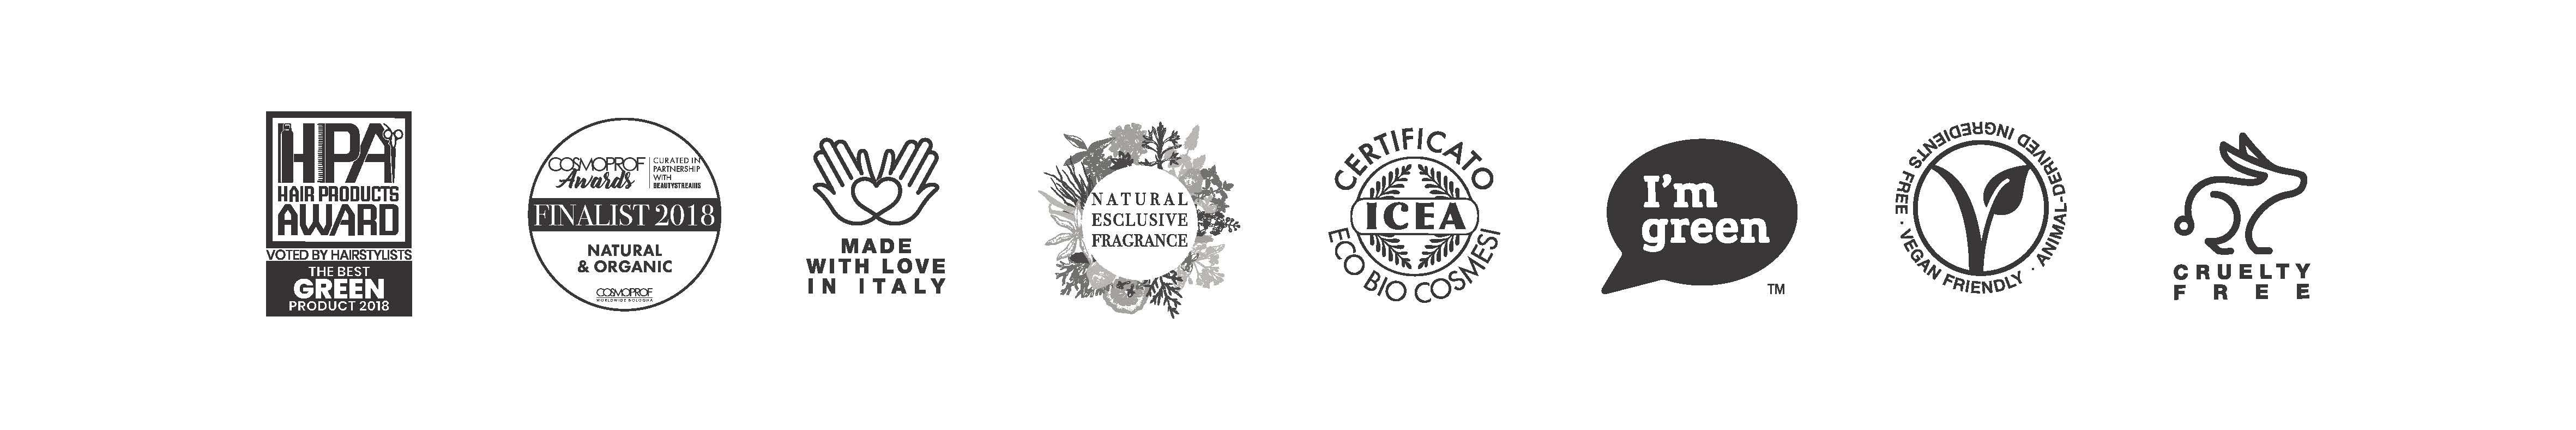 Selos Previa, HPA Hair Prodcut Award, ICEA, I´m Green, Vegan Friendly, Cruelty Free